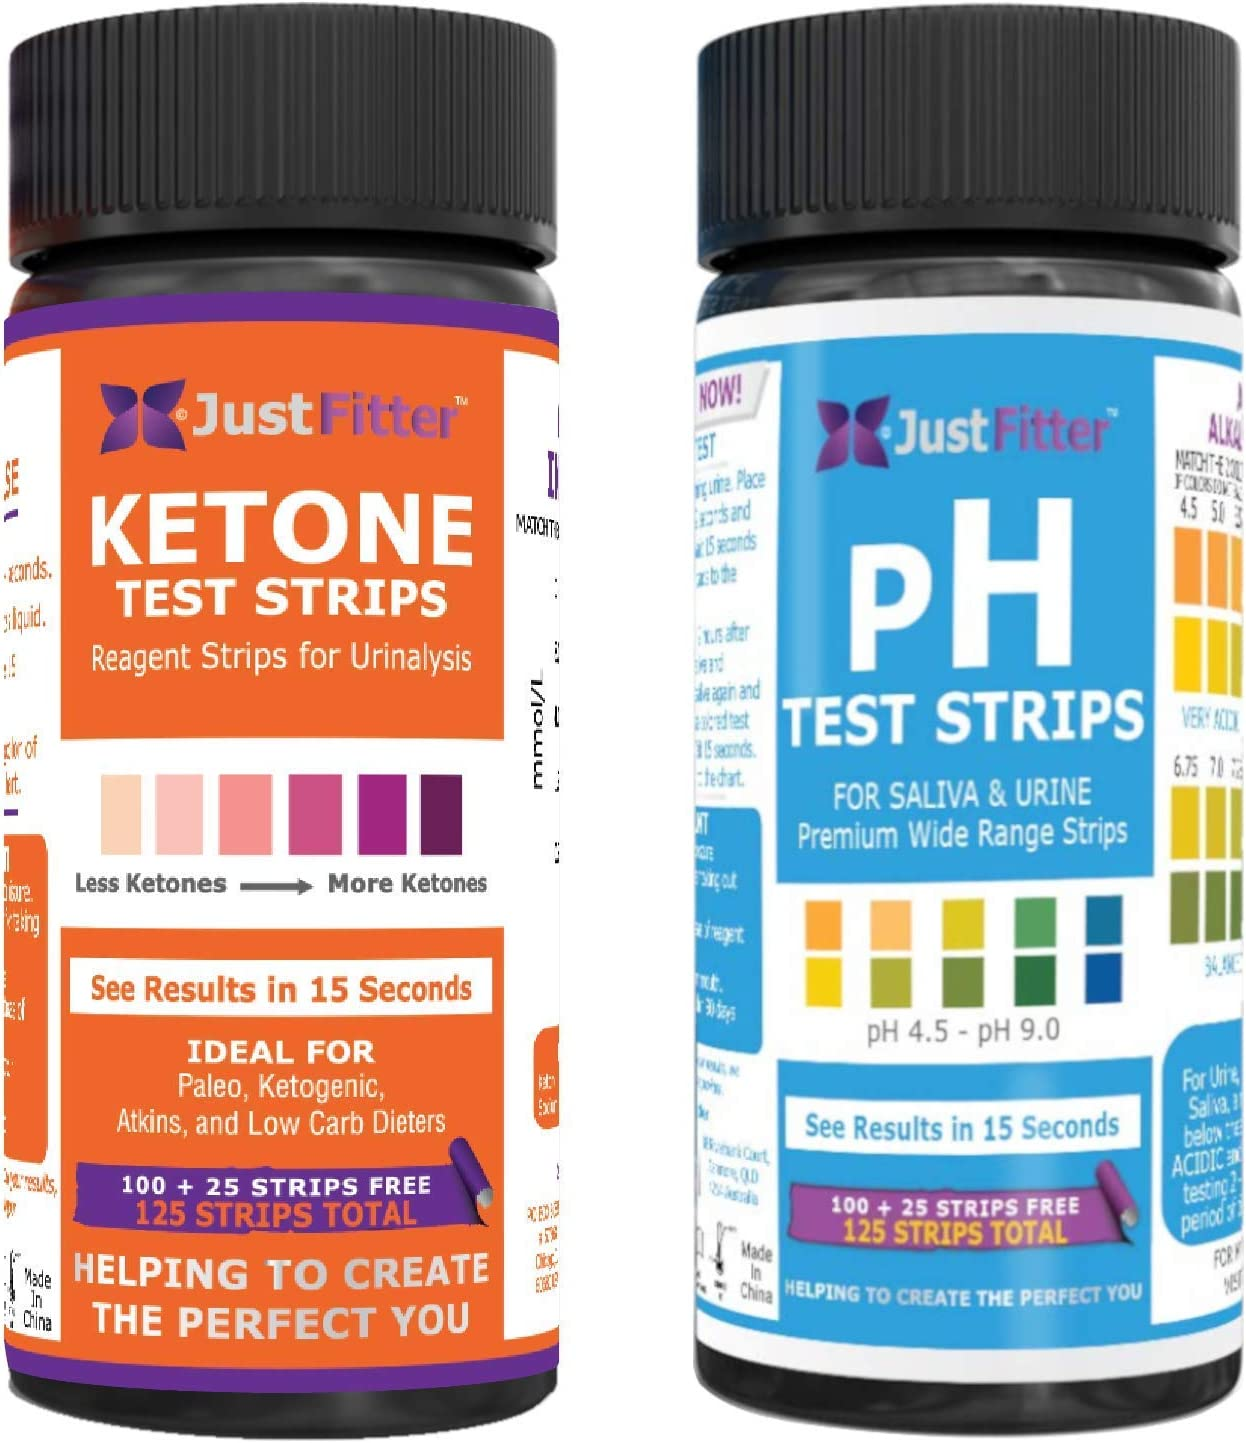 Ketone and pH Test Strips. Get to Keto Faster and Safer by Pairing Up Your Low Carb Ketogenic or HCG Diet with a Balanced pH. Accurately Measure Your Fat Burning Ketosis and Alkaline or Acid Levels.